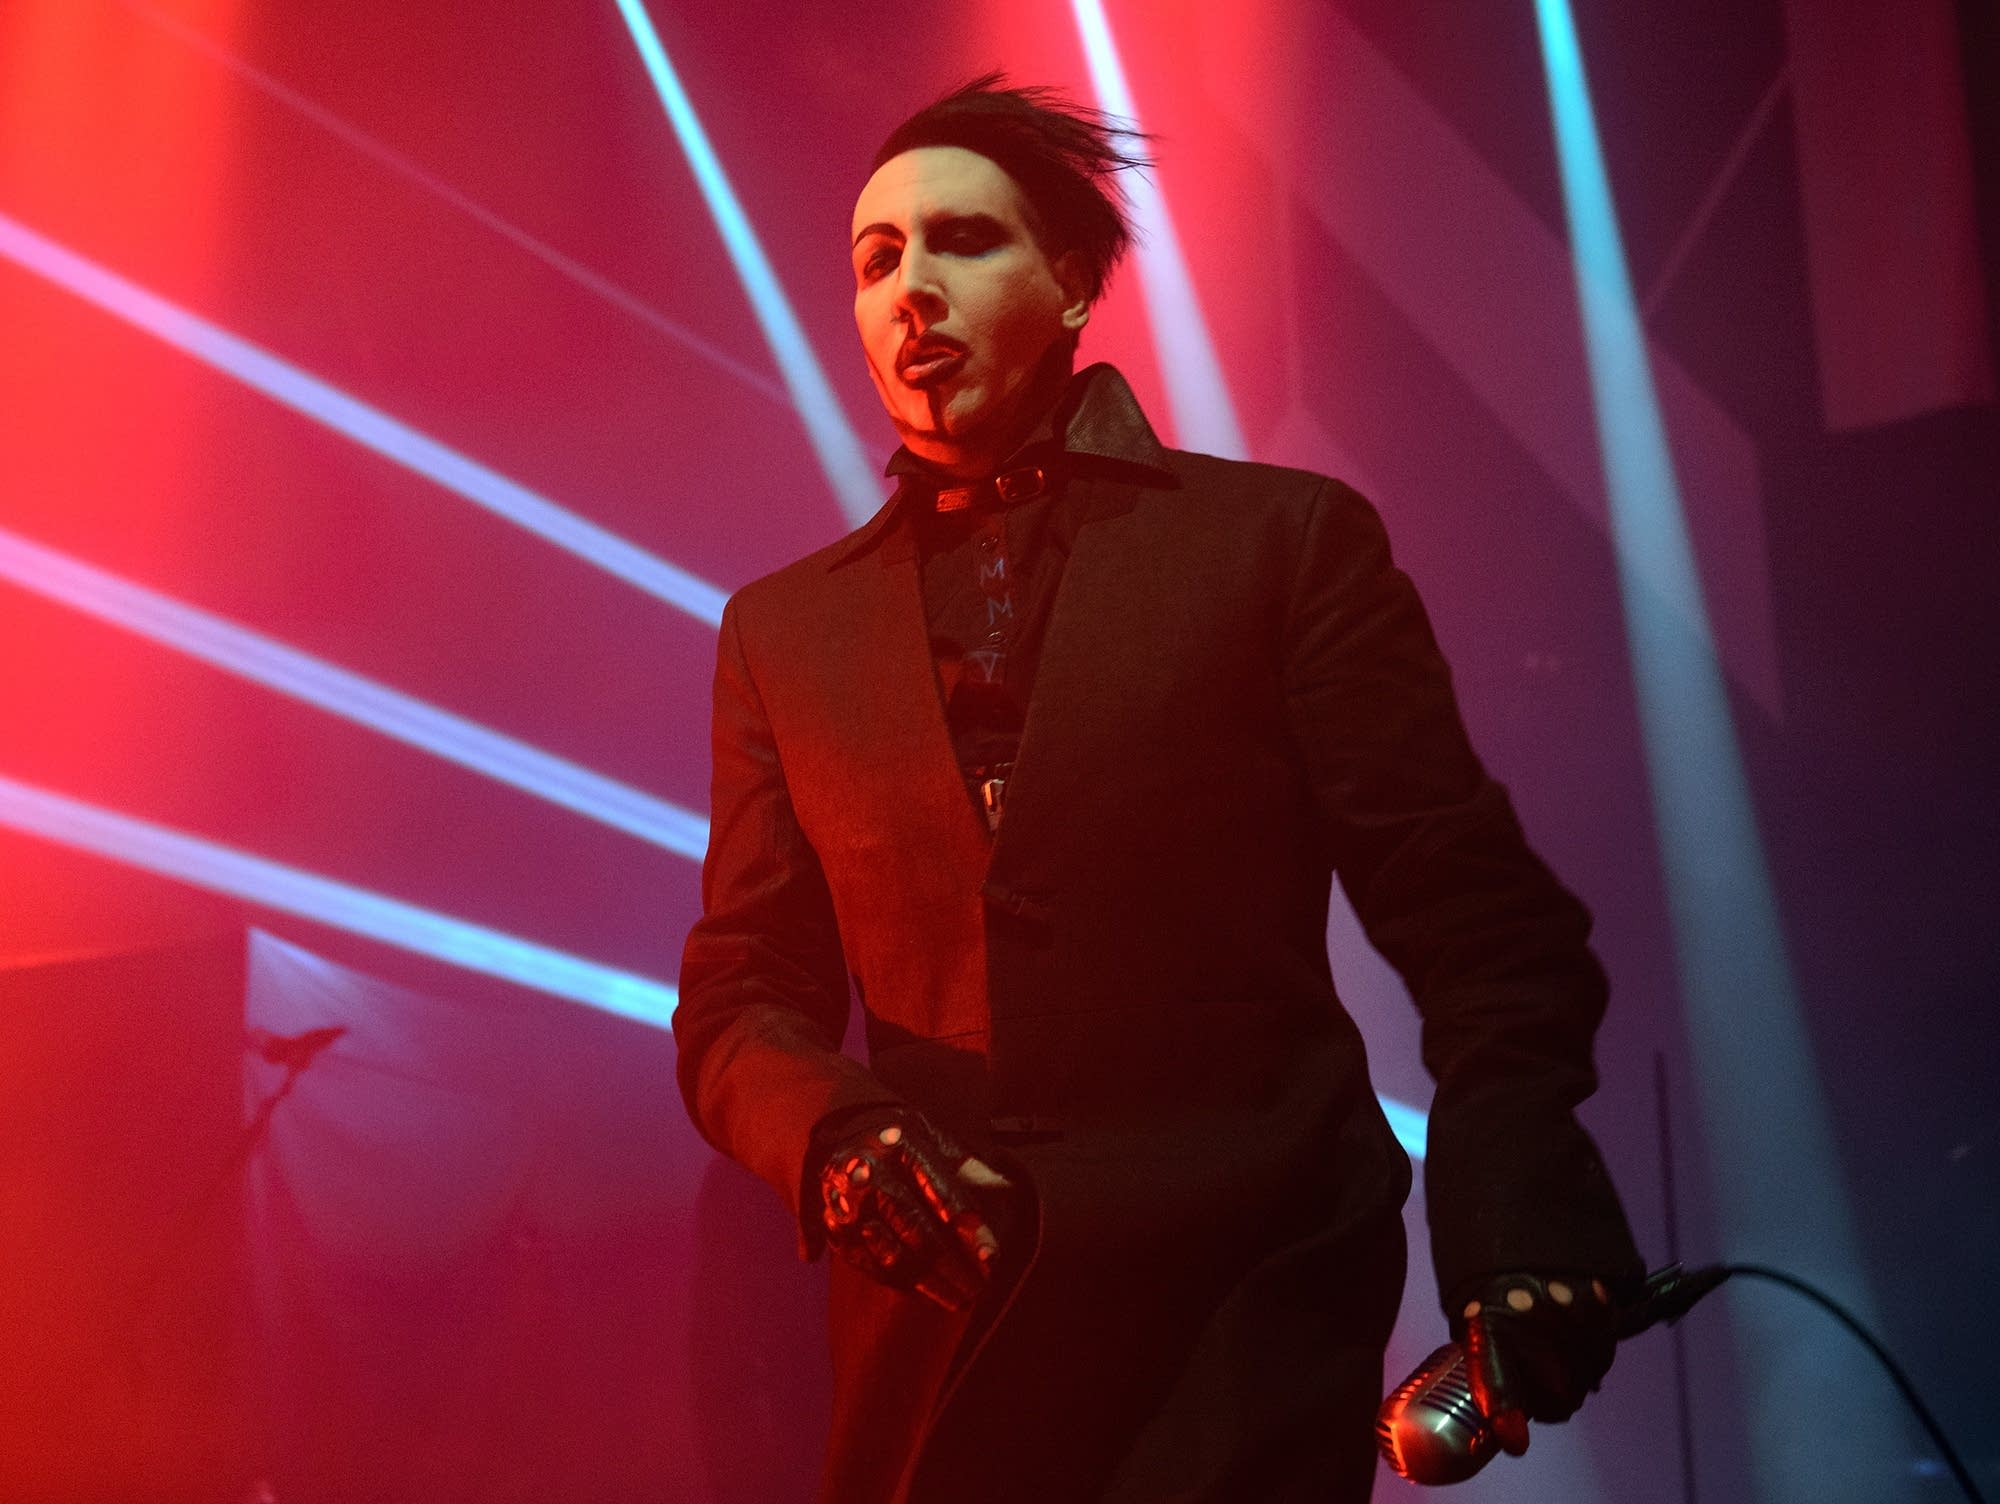 Marilyn Manson performs in Chicago in 2015.